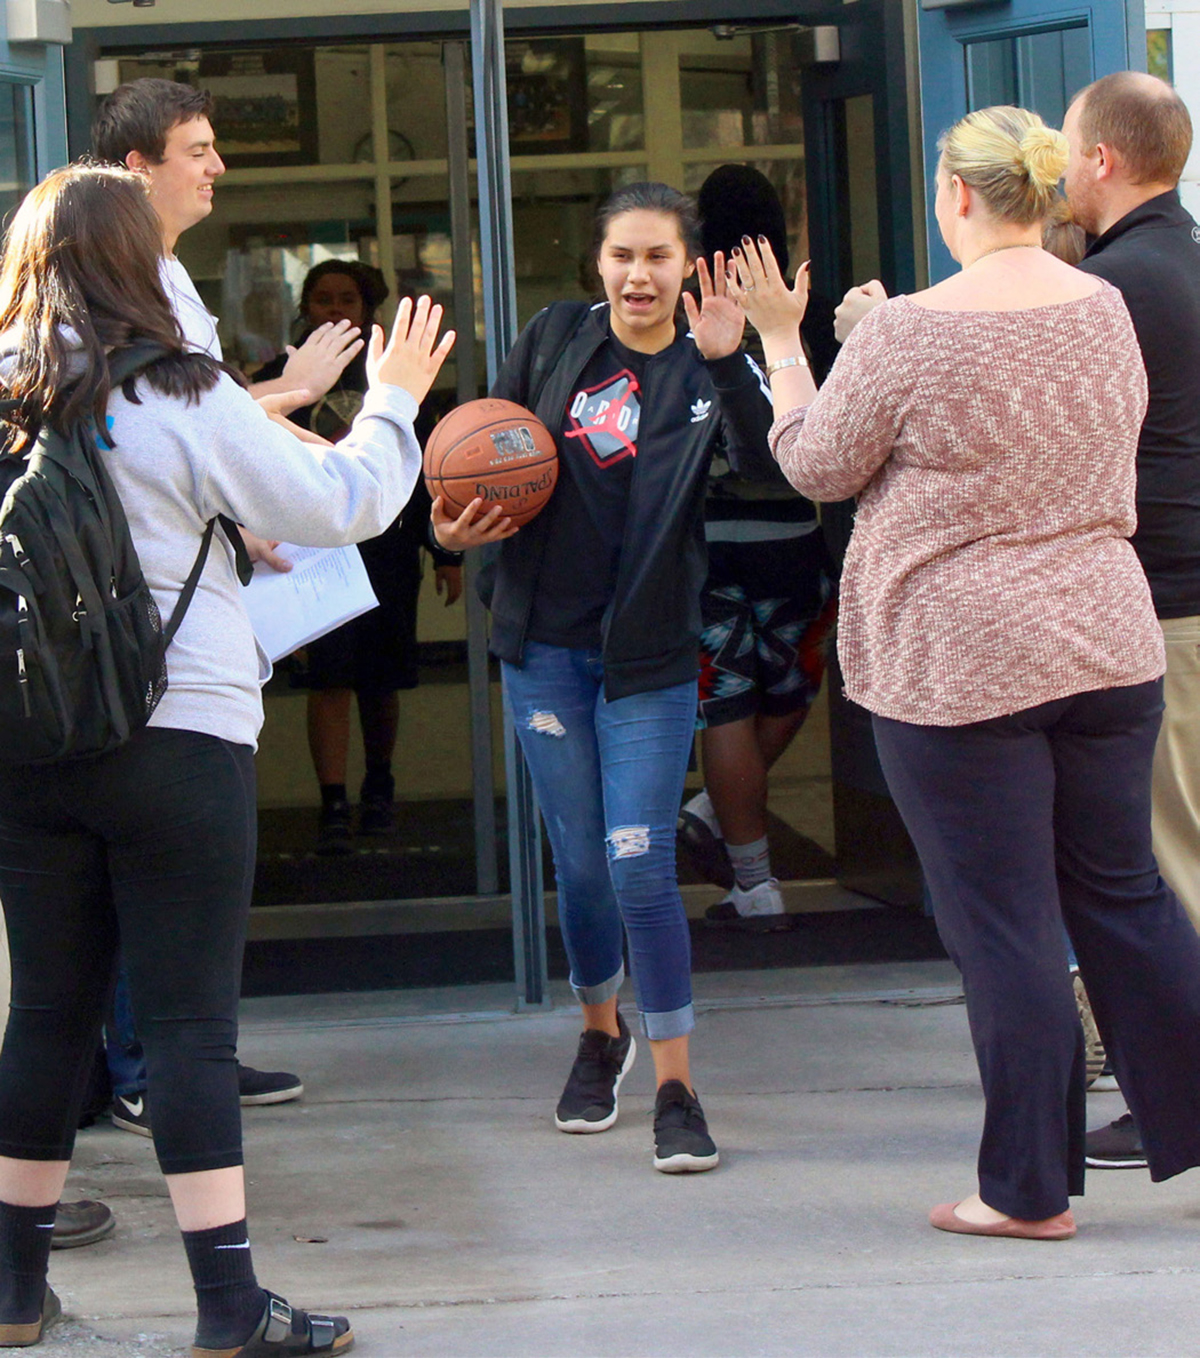 Junior-Senior High School leadership students hold doors and give classmates hand slaps and high-fives as they leave the school at the end of the day. The students hold the doors and greet classmates in the morning as well.